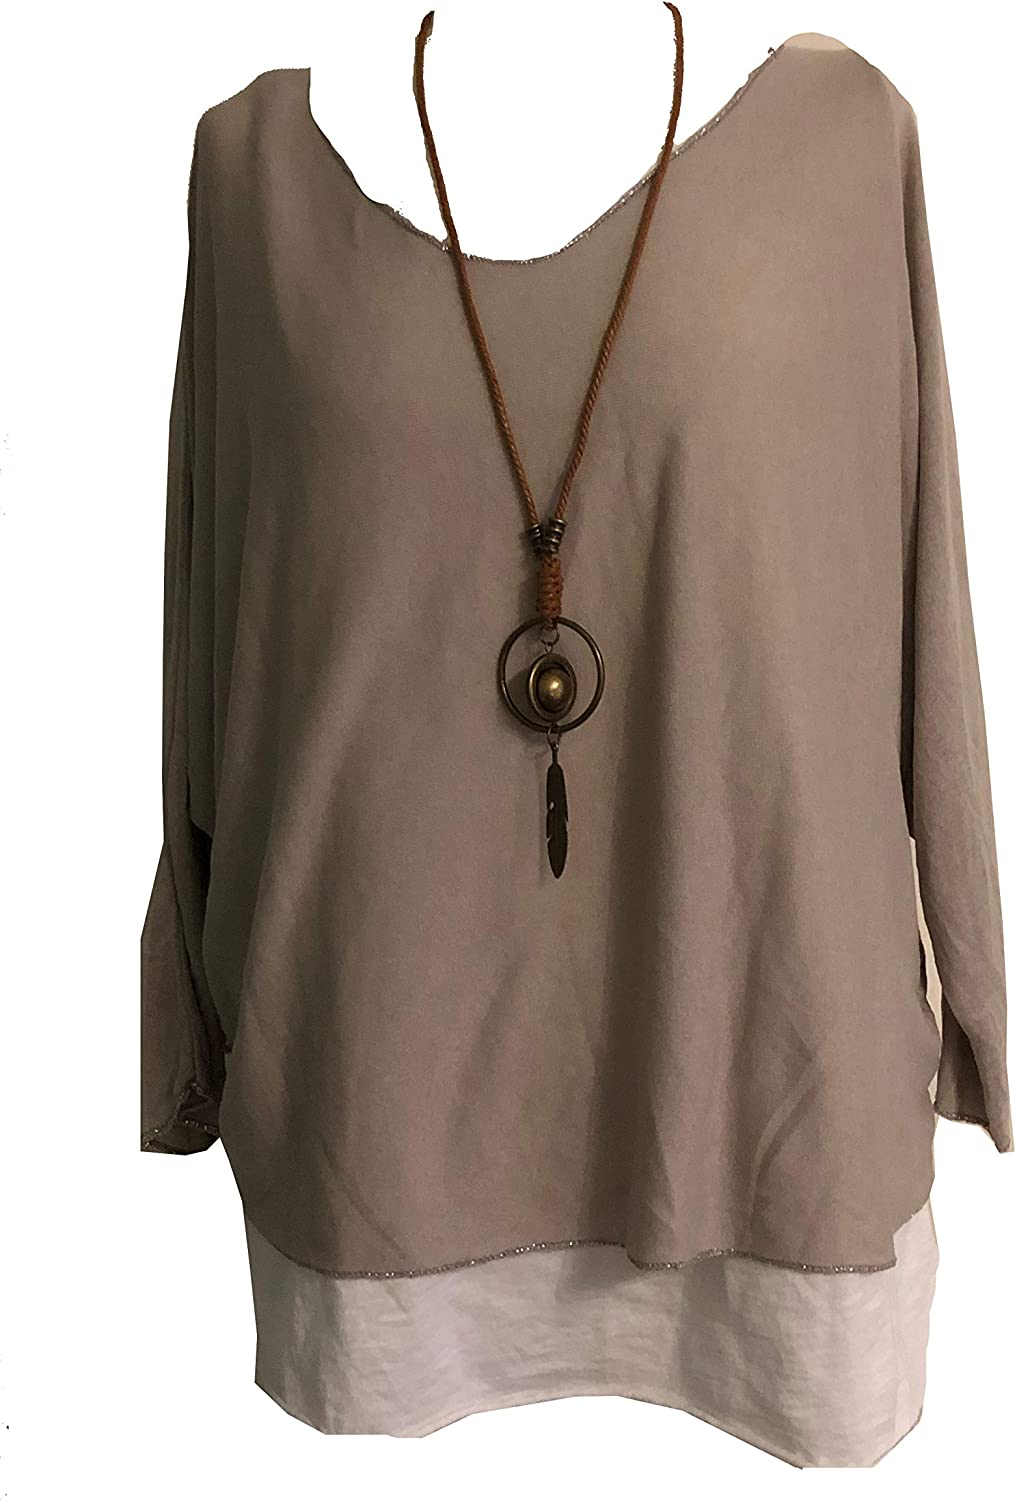 Ladies 2 Piece Layer Plain Top with Necklace with 3/4 Sleeves (A91) - Made in Italy (Beige)